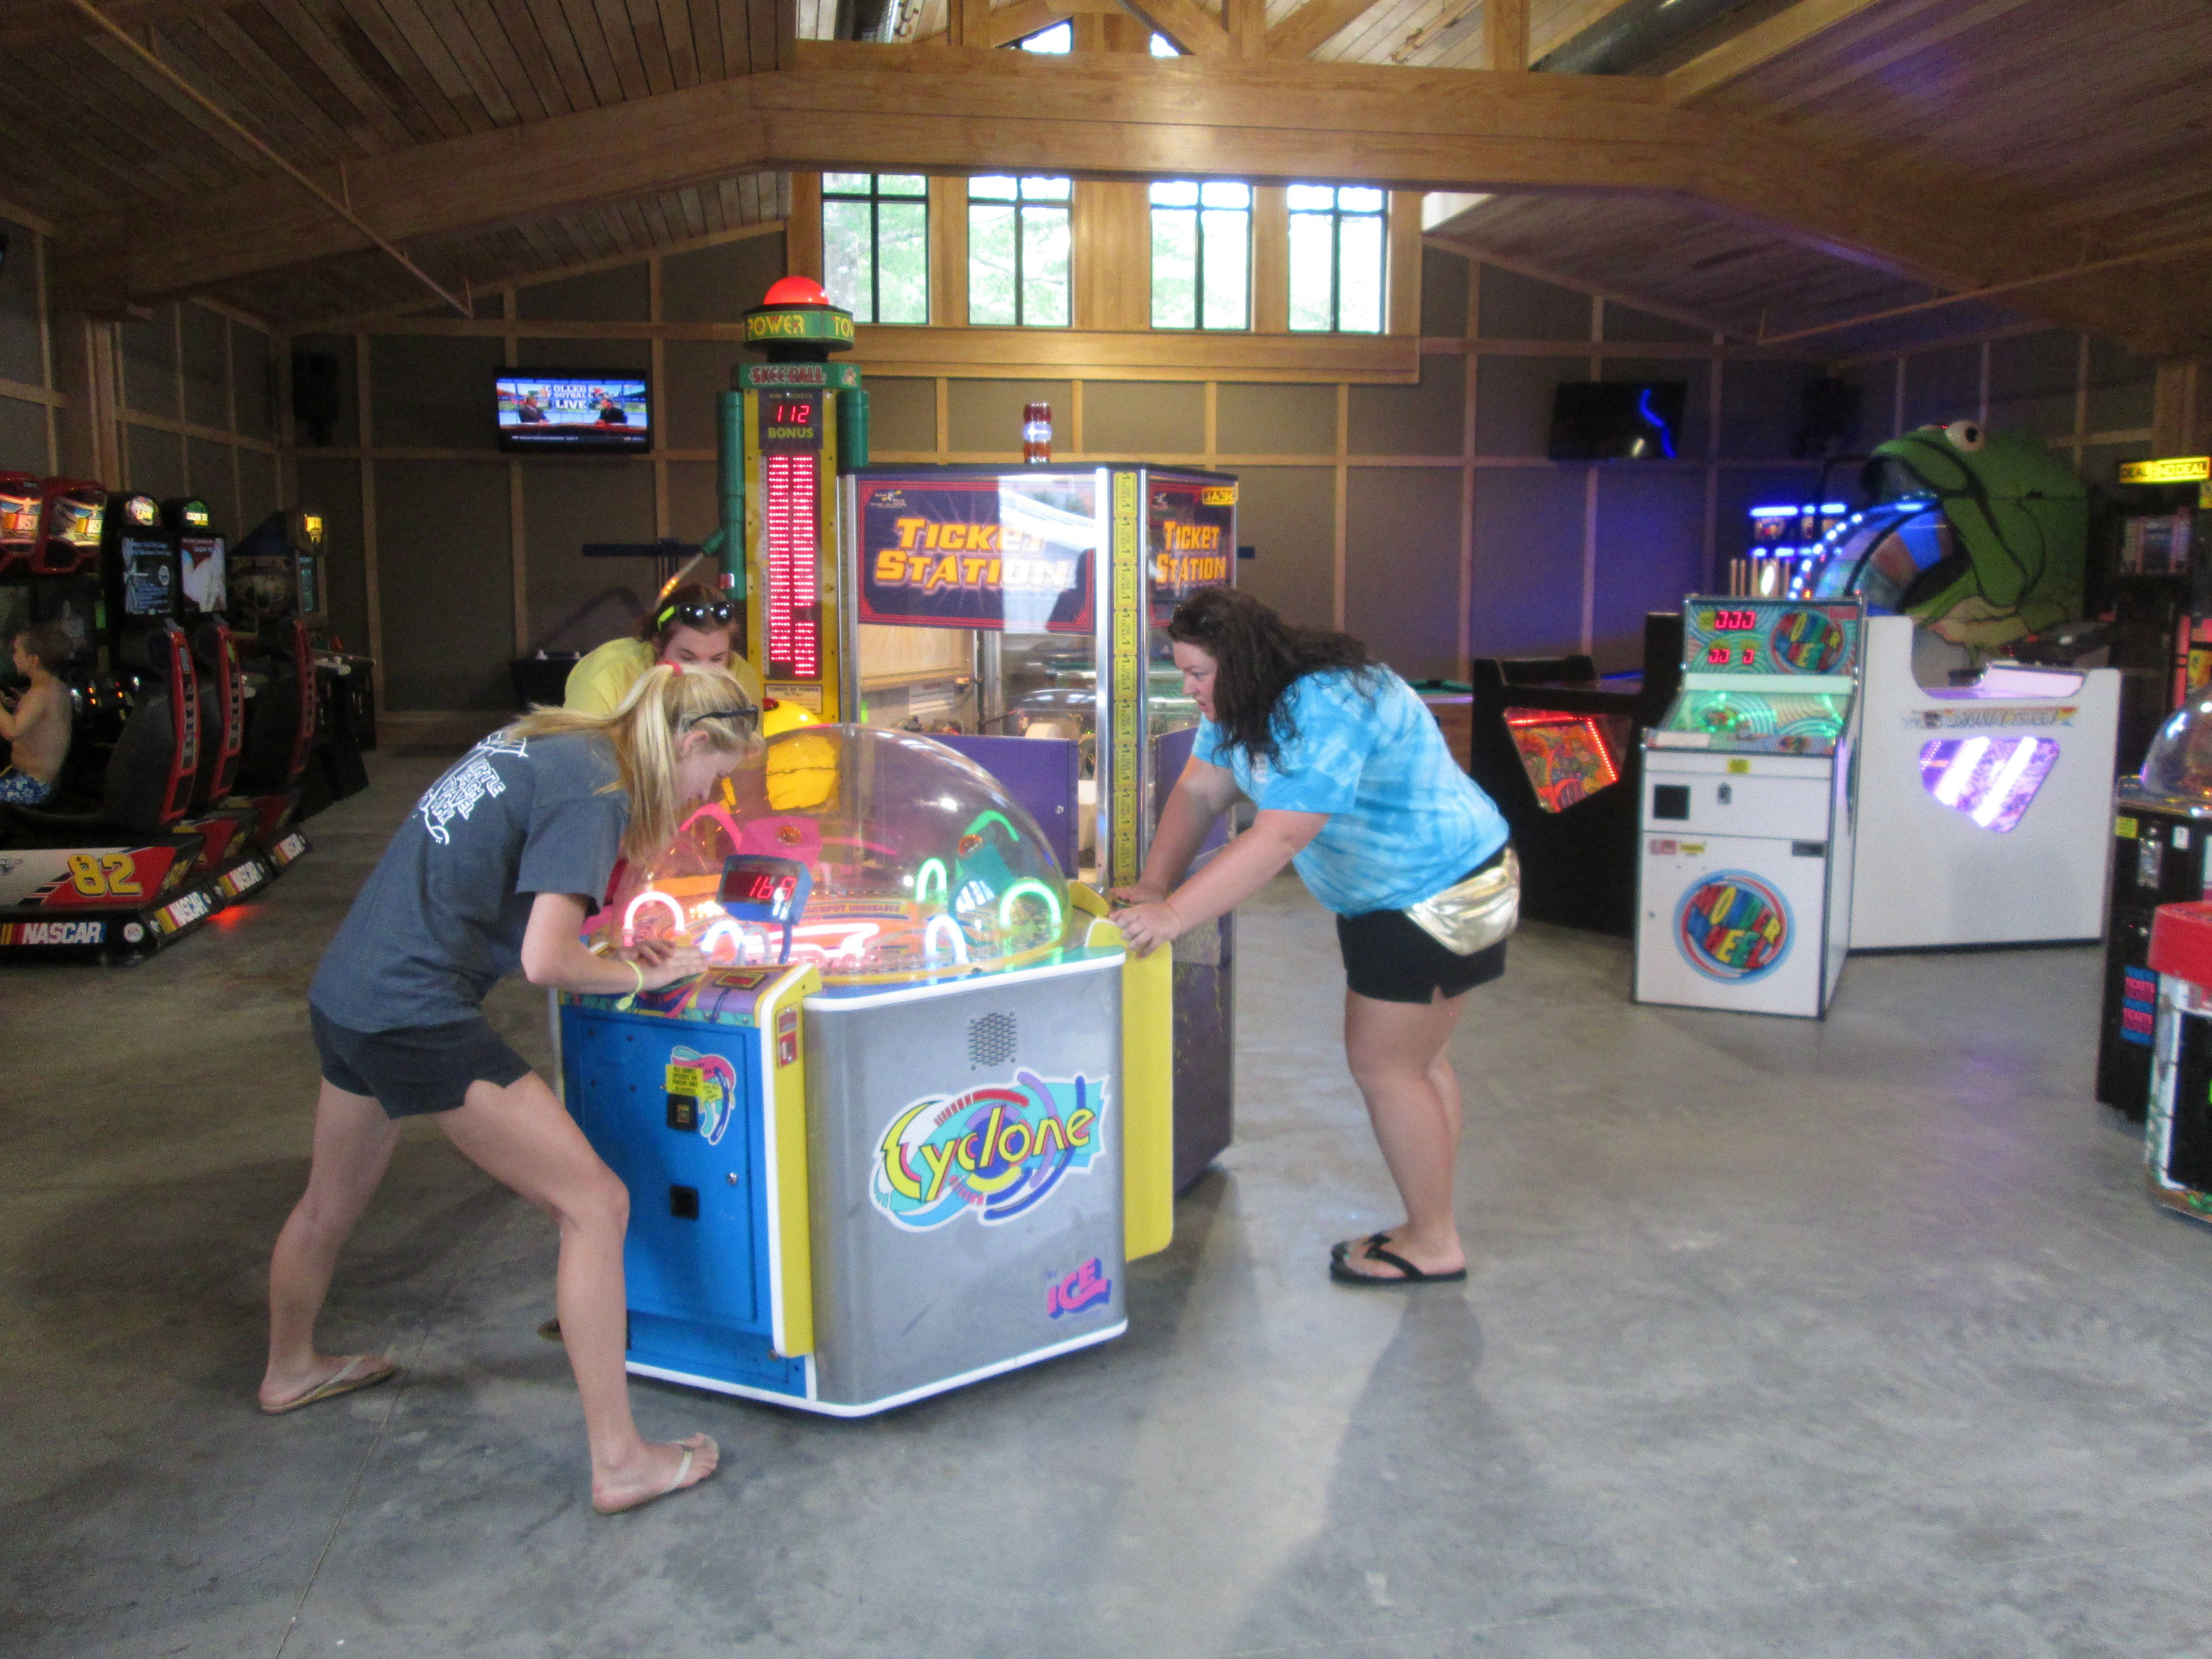 Myrtle Beach Travel Park Arcade and Snack Bar in South